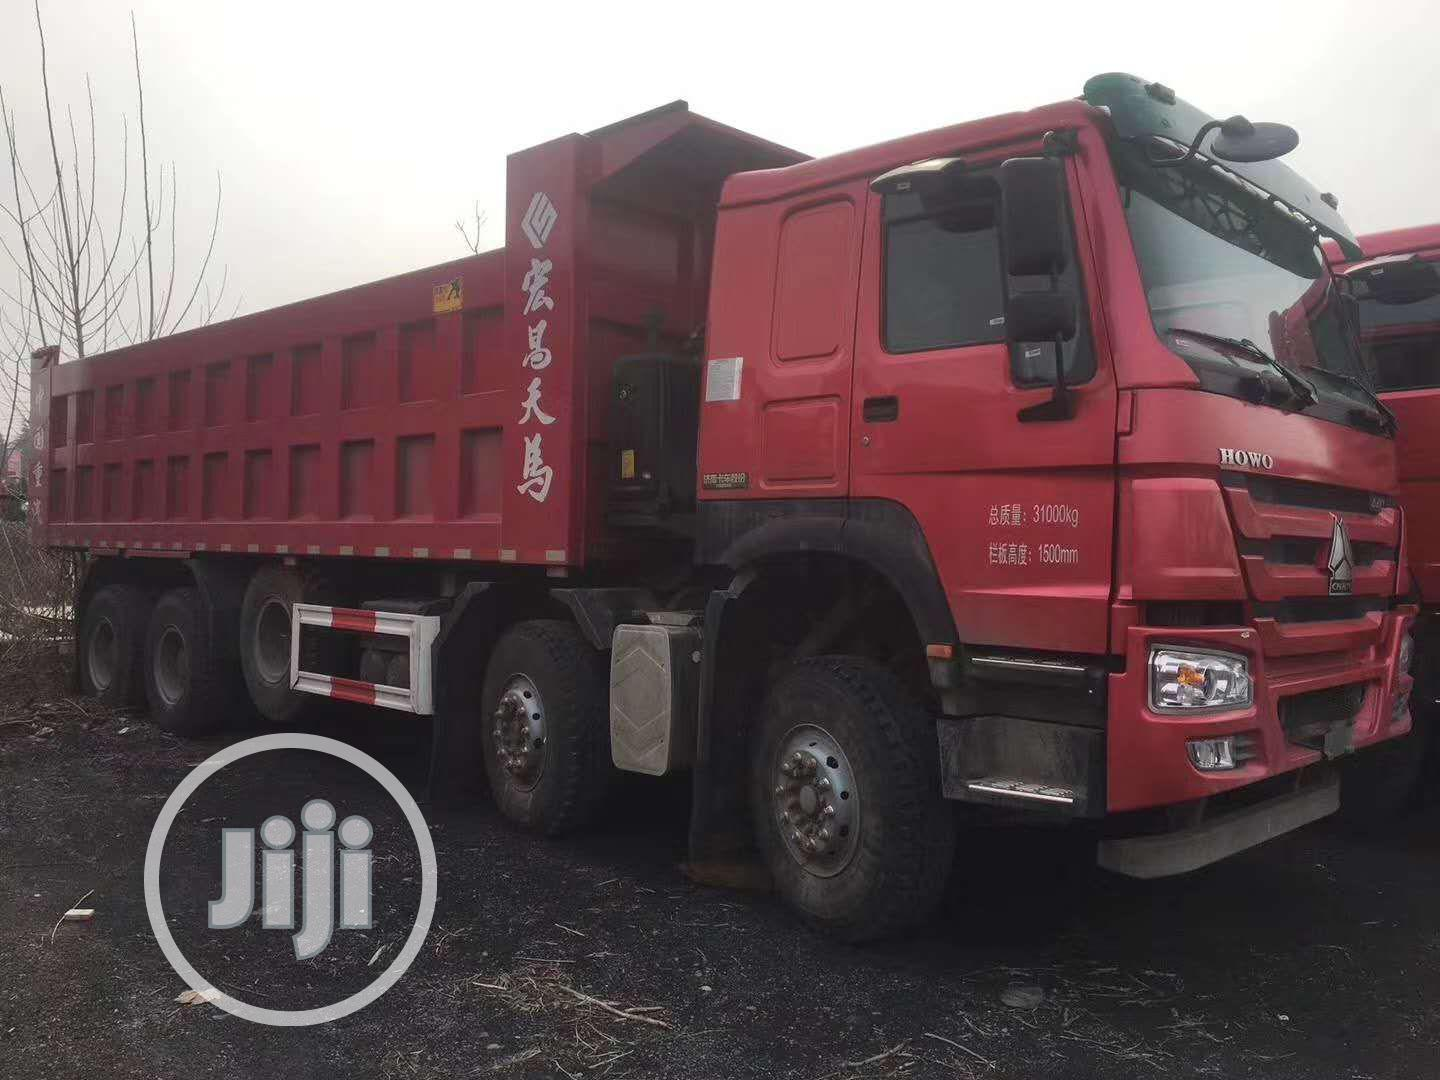 Foreign Used Howo Truck   Trucks & Trailers for sale in Amuwo-Odofin, Lagos State, Nigeria